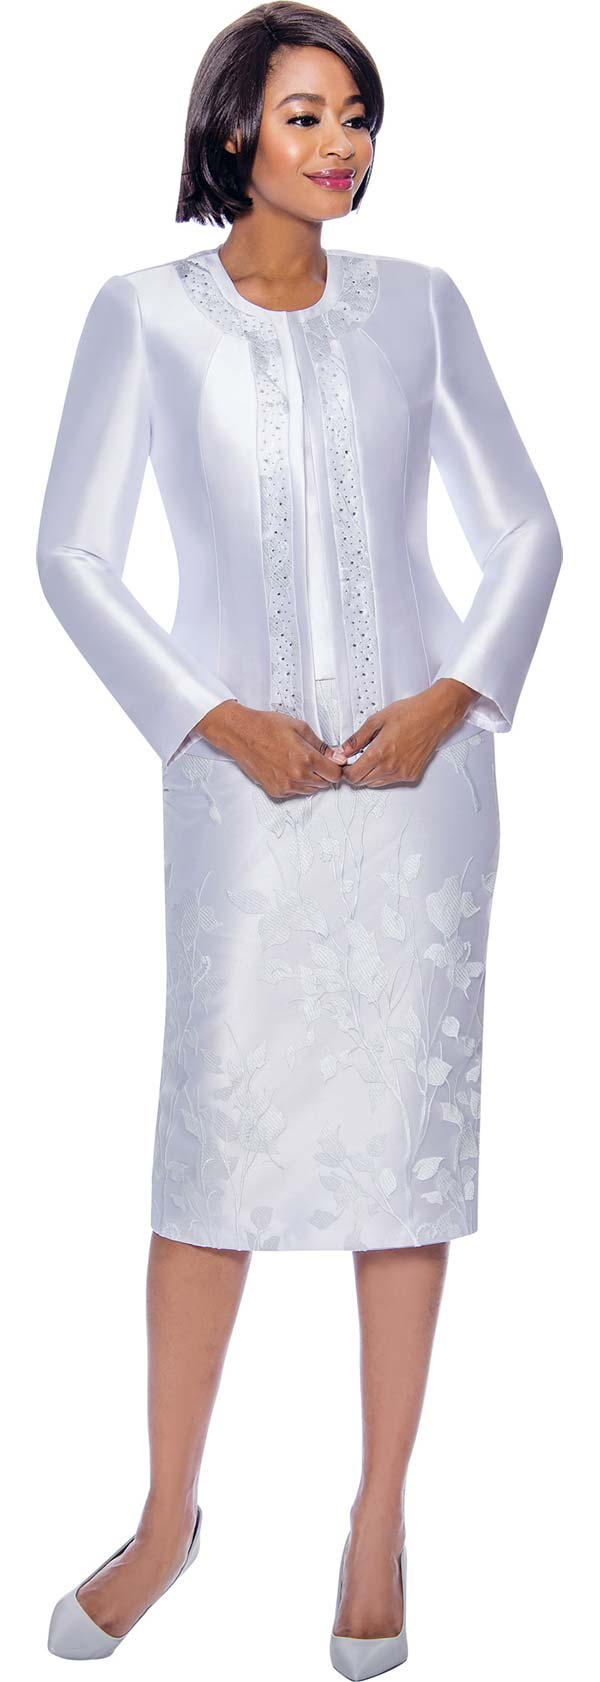 Susanna 3942-White - Ladies Church Suit With Floral Textured Skirt Embellished Jacket Trim